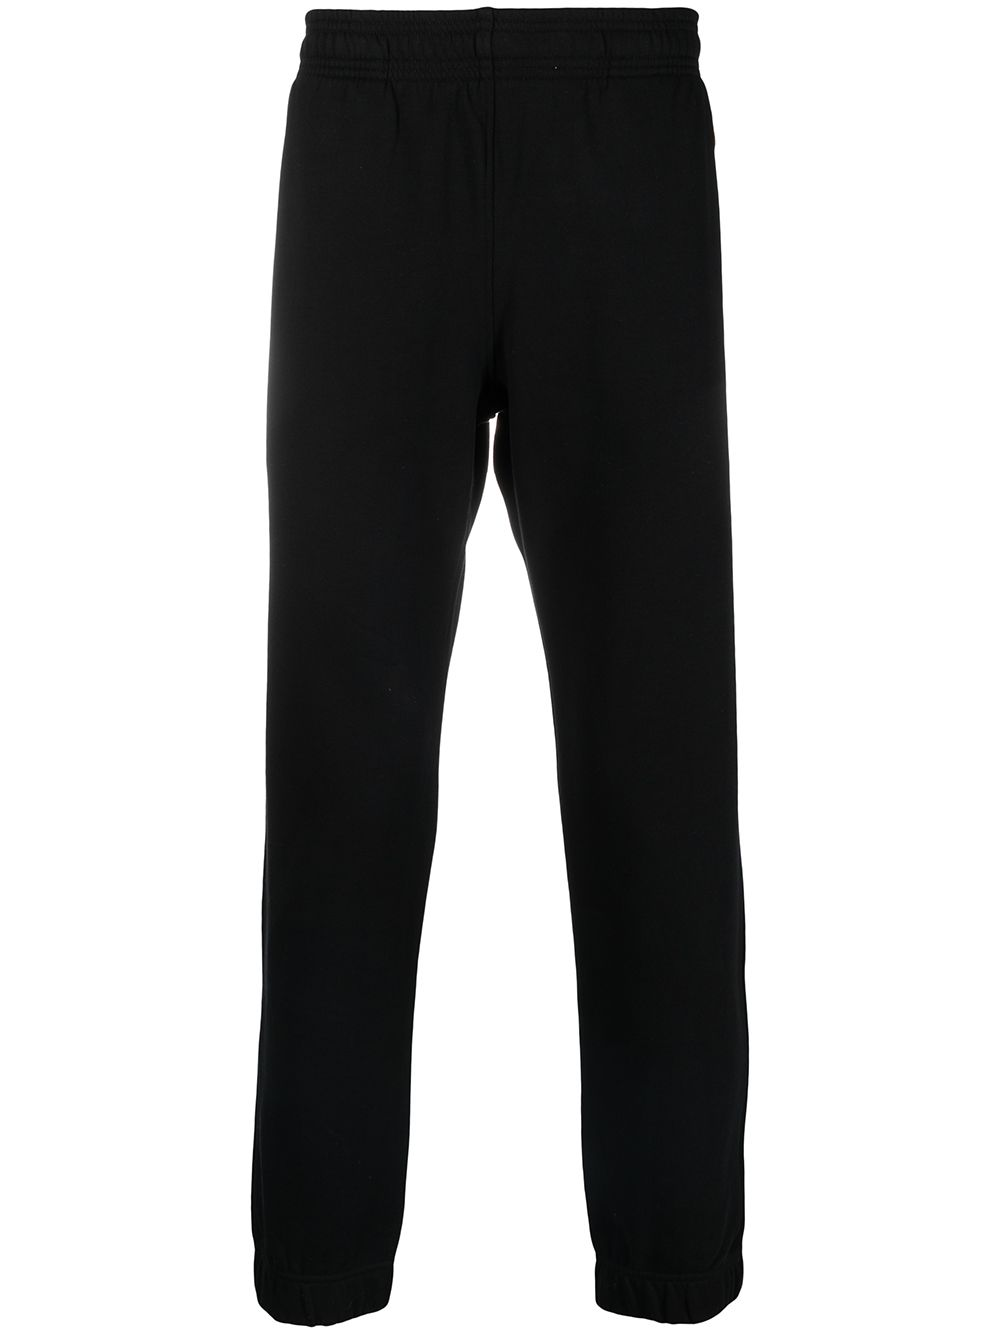 Black cotton track trousers featuring elasticated waistband KENZO |  | FB5-5PA711-4ML99